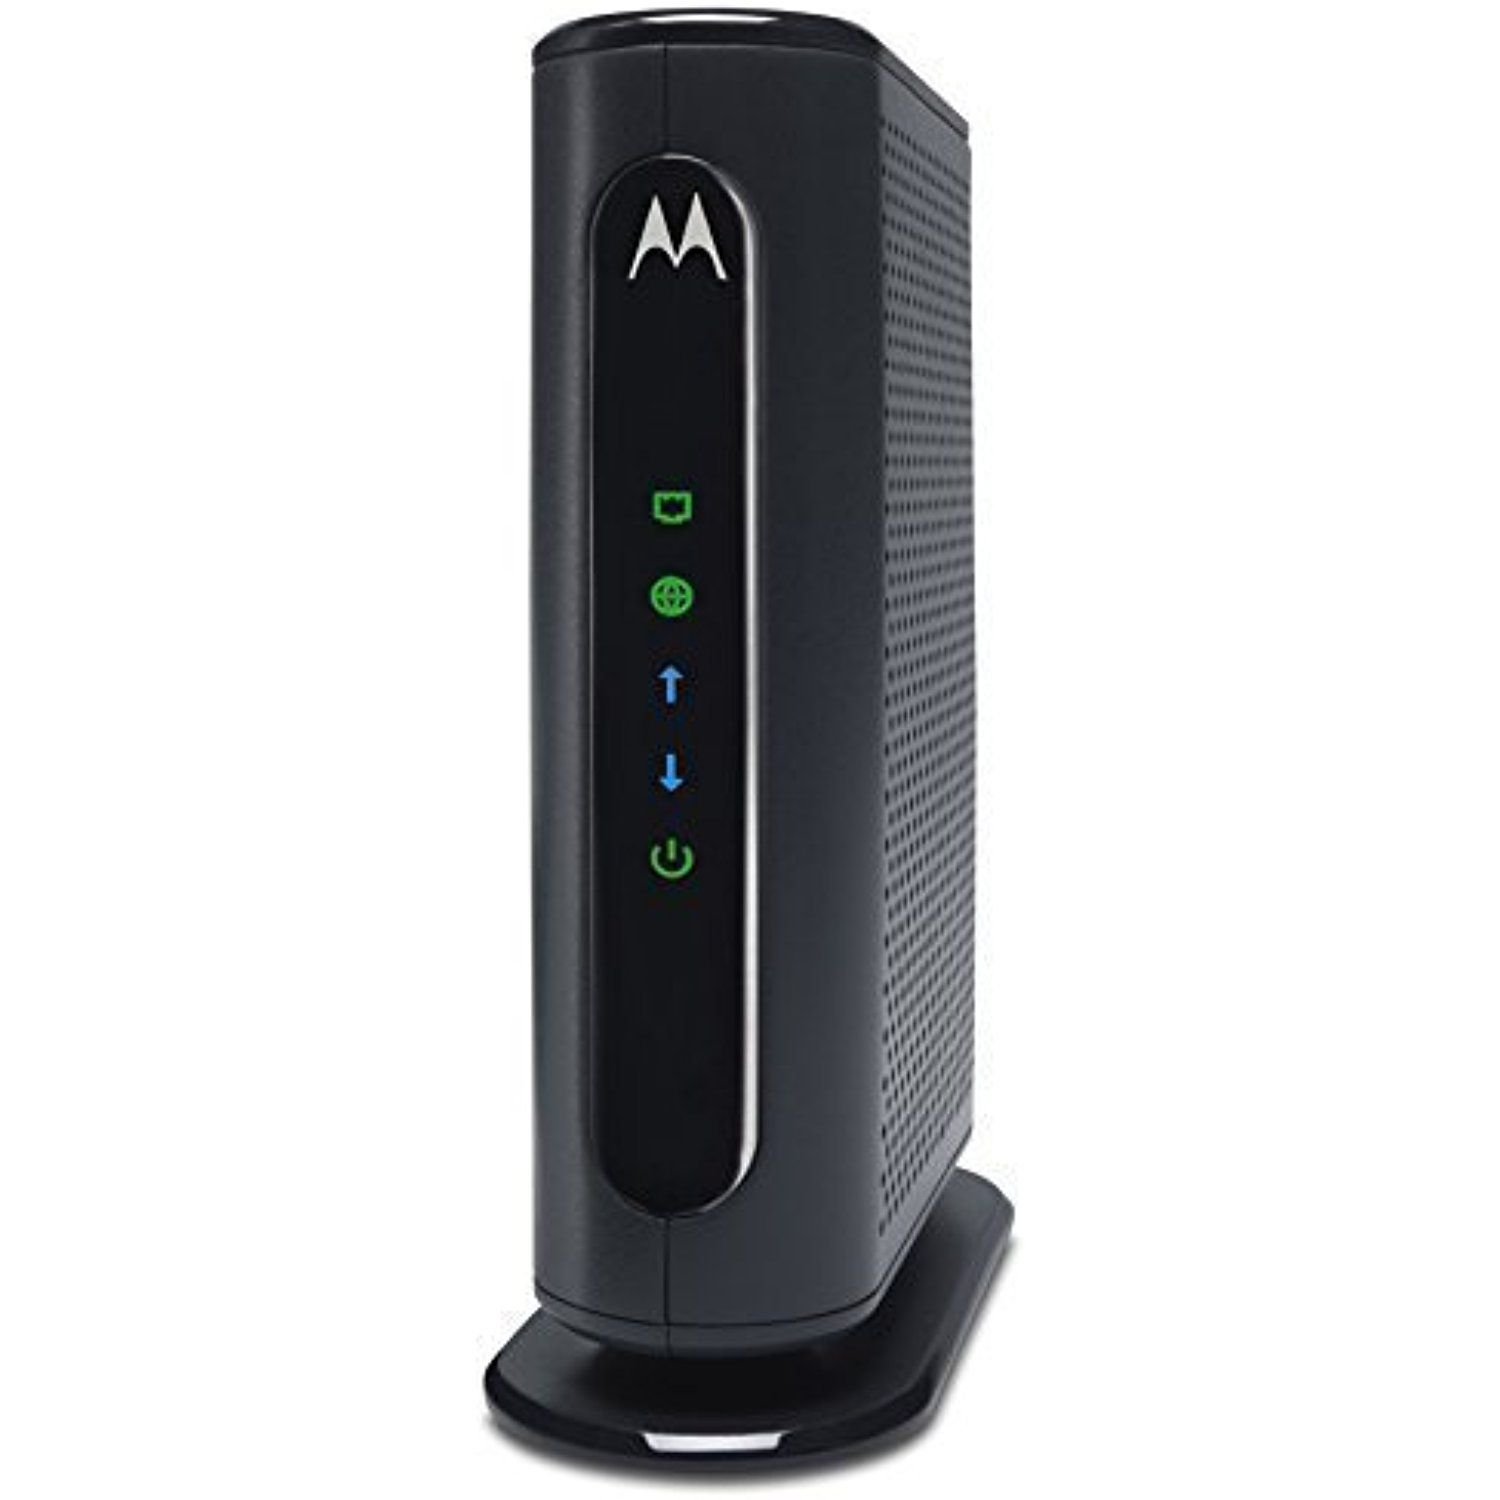 Motorola 16x4 Cable Modem Model Mb7420 686 Mbps Docsis 3 0 Certified By Comcast Xfinity Charter Spectrum Time Warner Ca Cable Modem Modems Comcast Xfinity